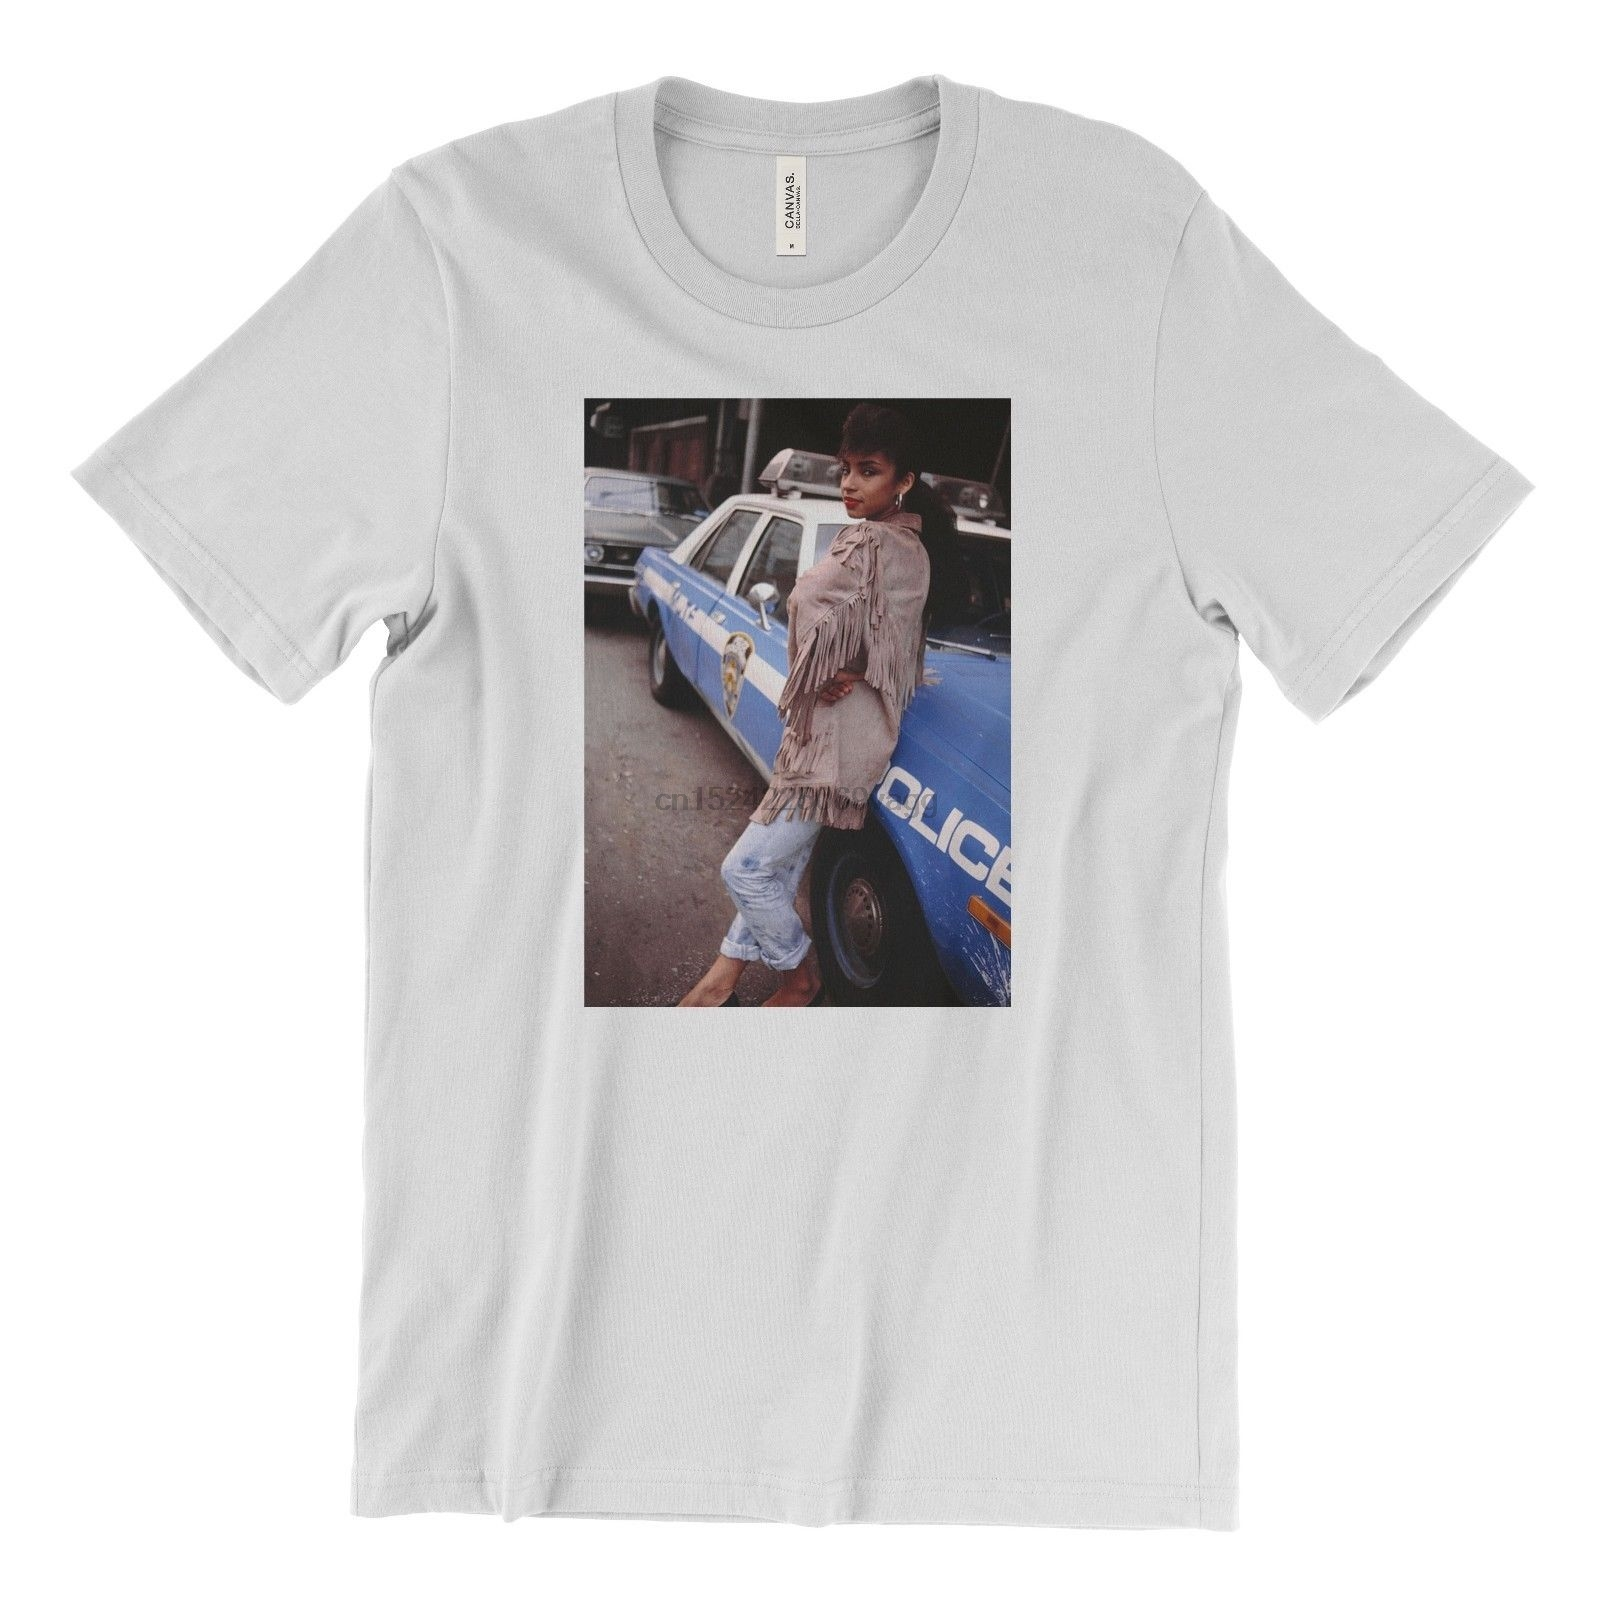 US $12 34 5% OFF Sade T Shirt Lovers Rock Smooth Operator No Ordinary Love  Deluxe Sweetest taboo-in T-Shirts from Men's Clothing on Aliexpress com  